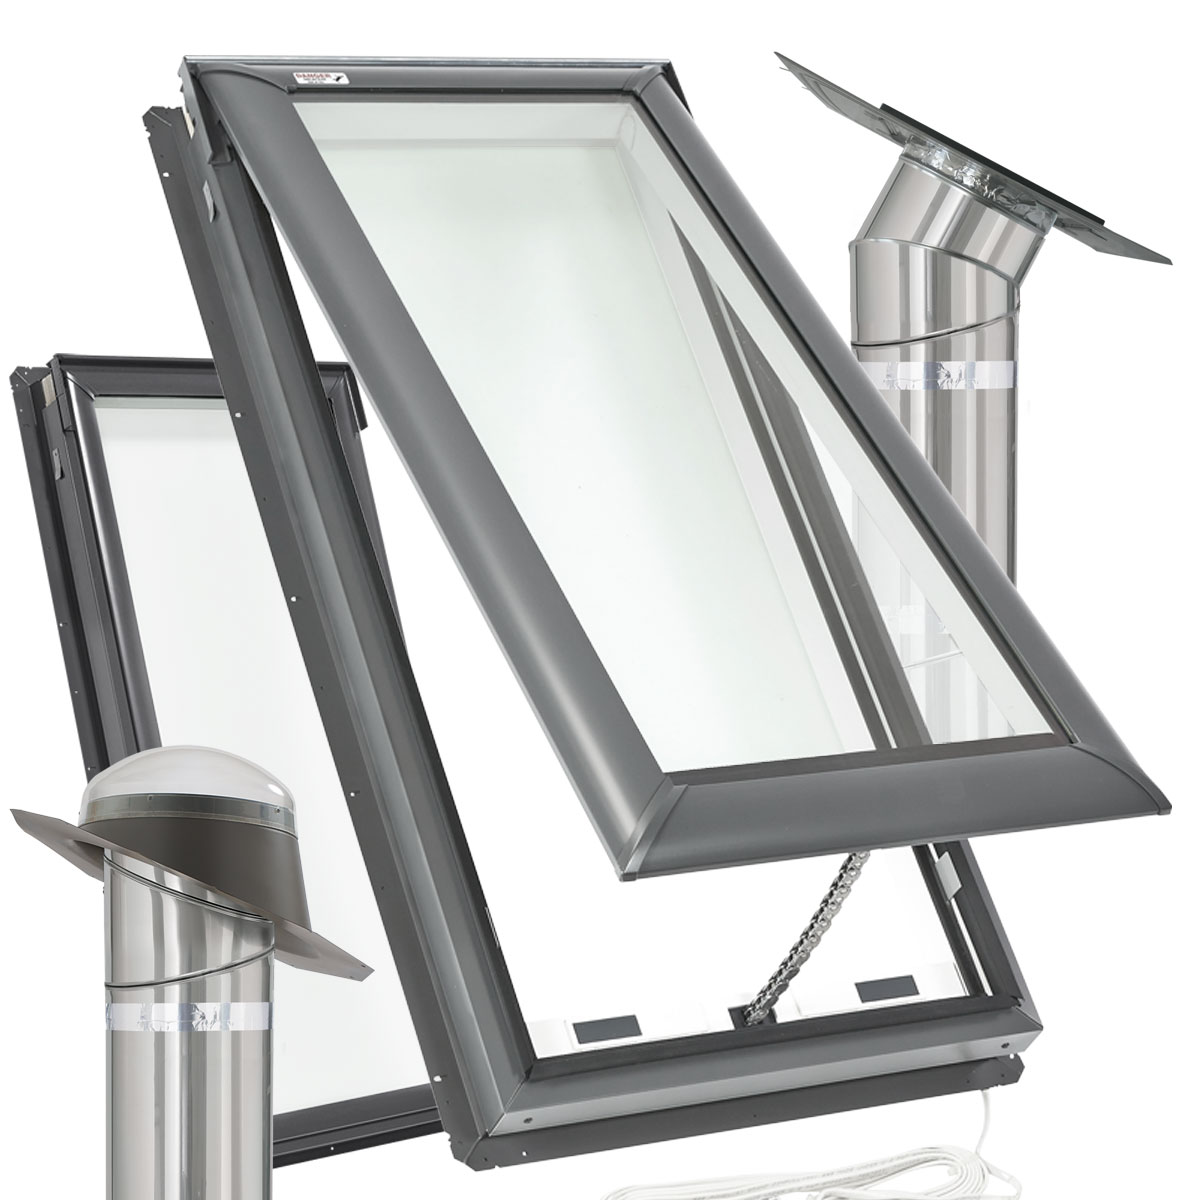 Lustercraft is a distributor of Velux skylights